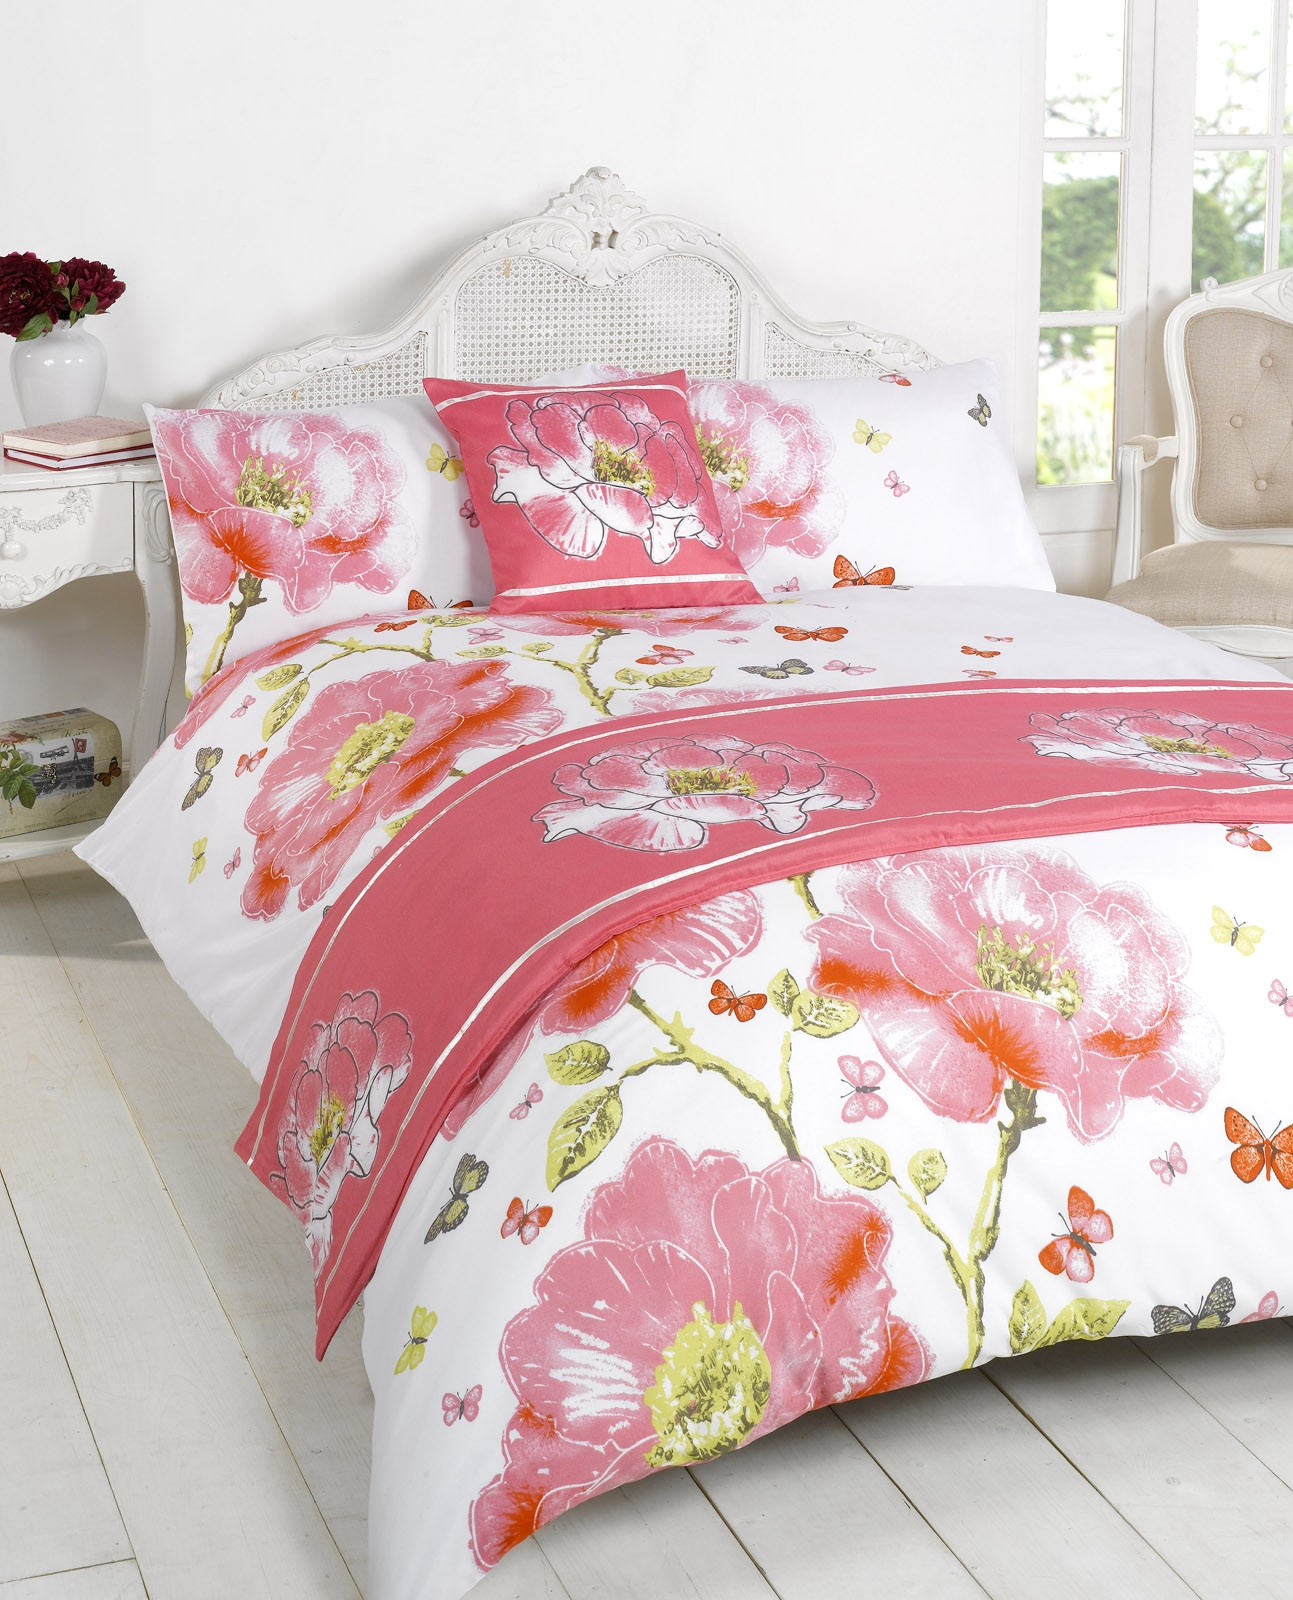 stepp bettdecke bettw sche bed in a bag pink einzelbett doppelbett kingsize ebay. Black Bedroom Furniture Sets. Home Design Ideas